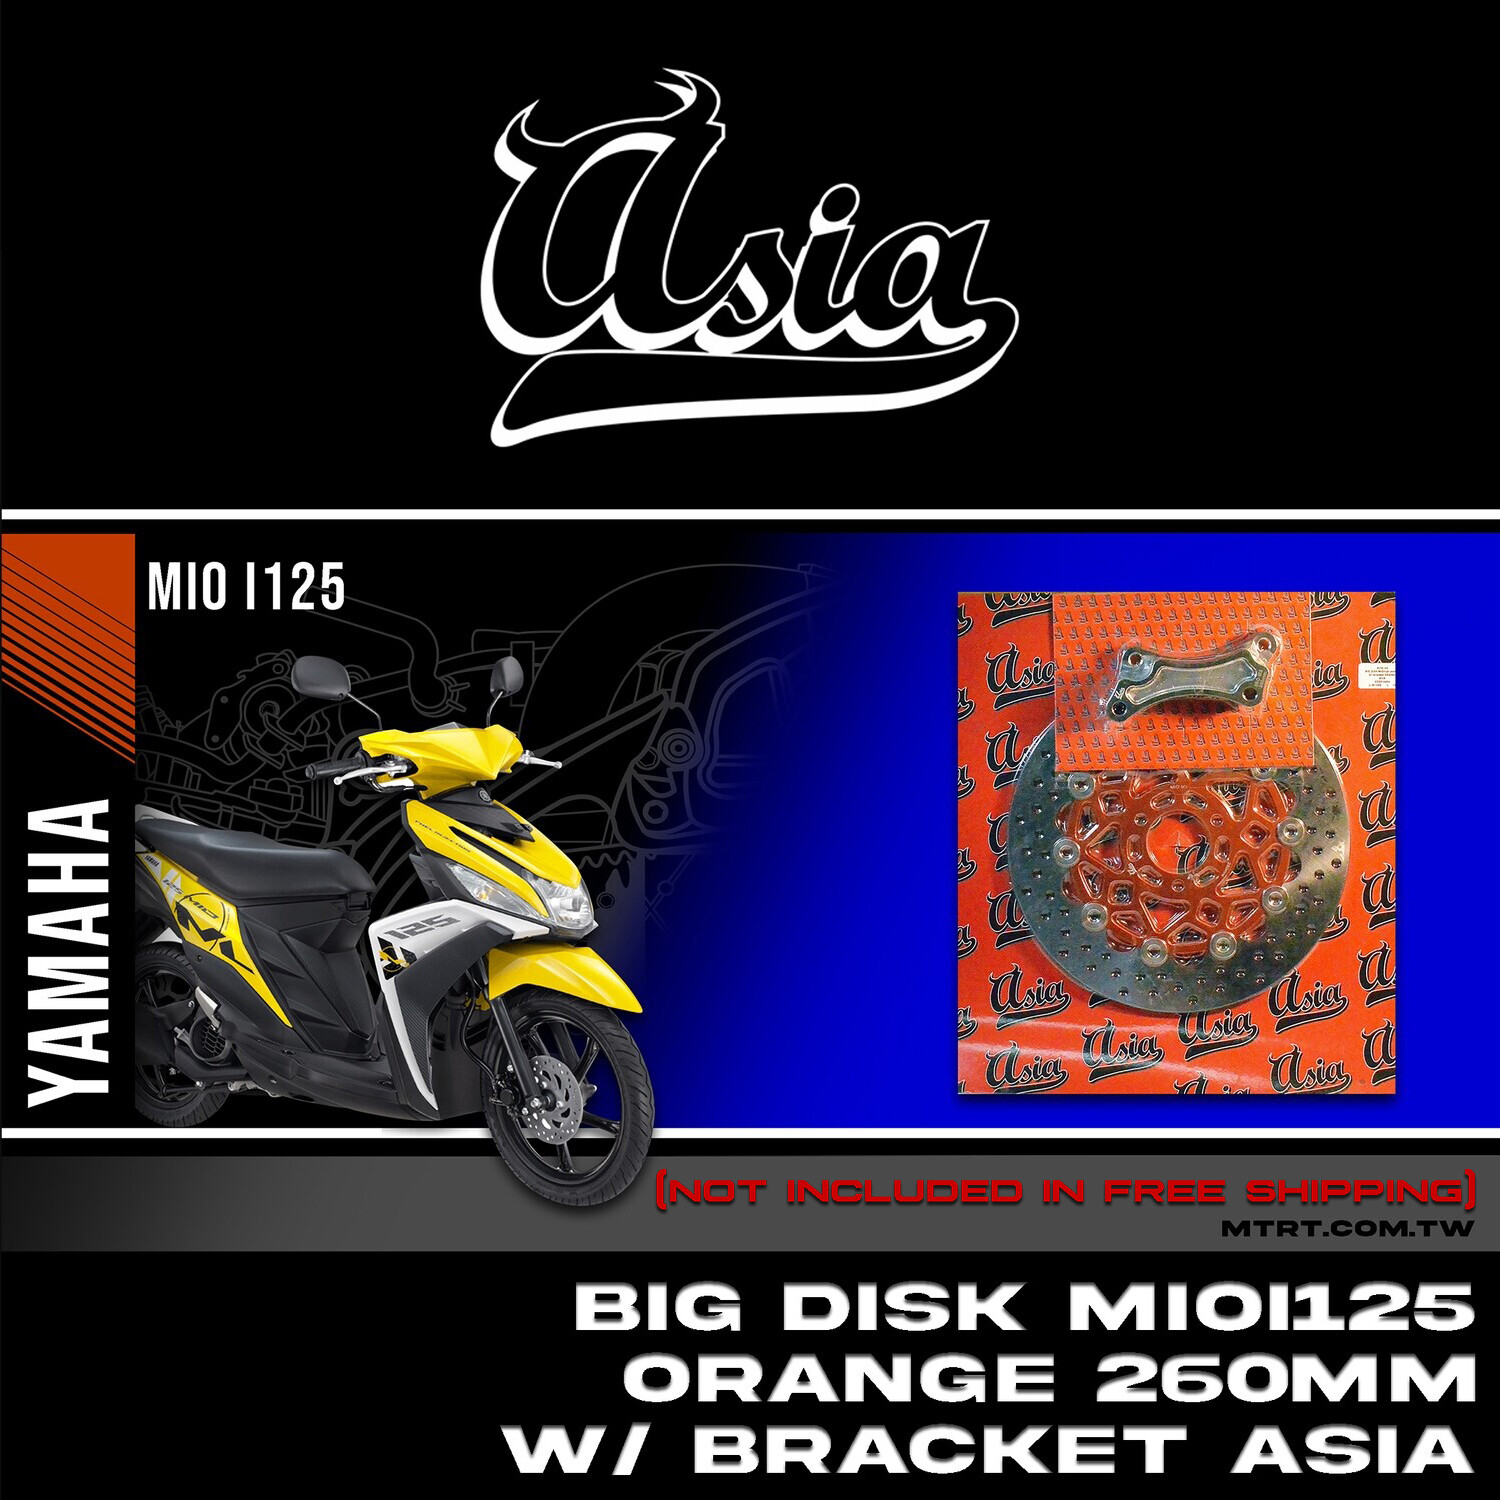 BIG DISK MIOi125 Orange  260MM with bracket ASIA